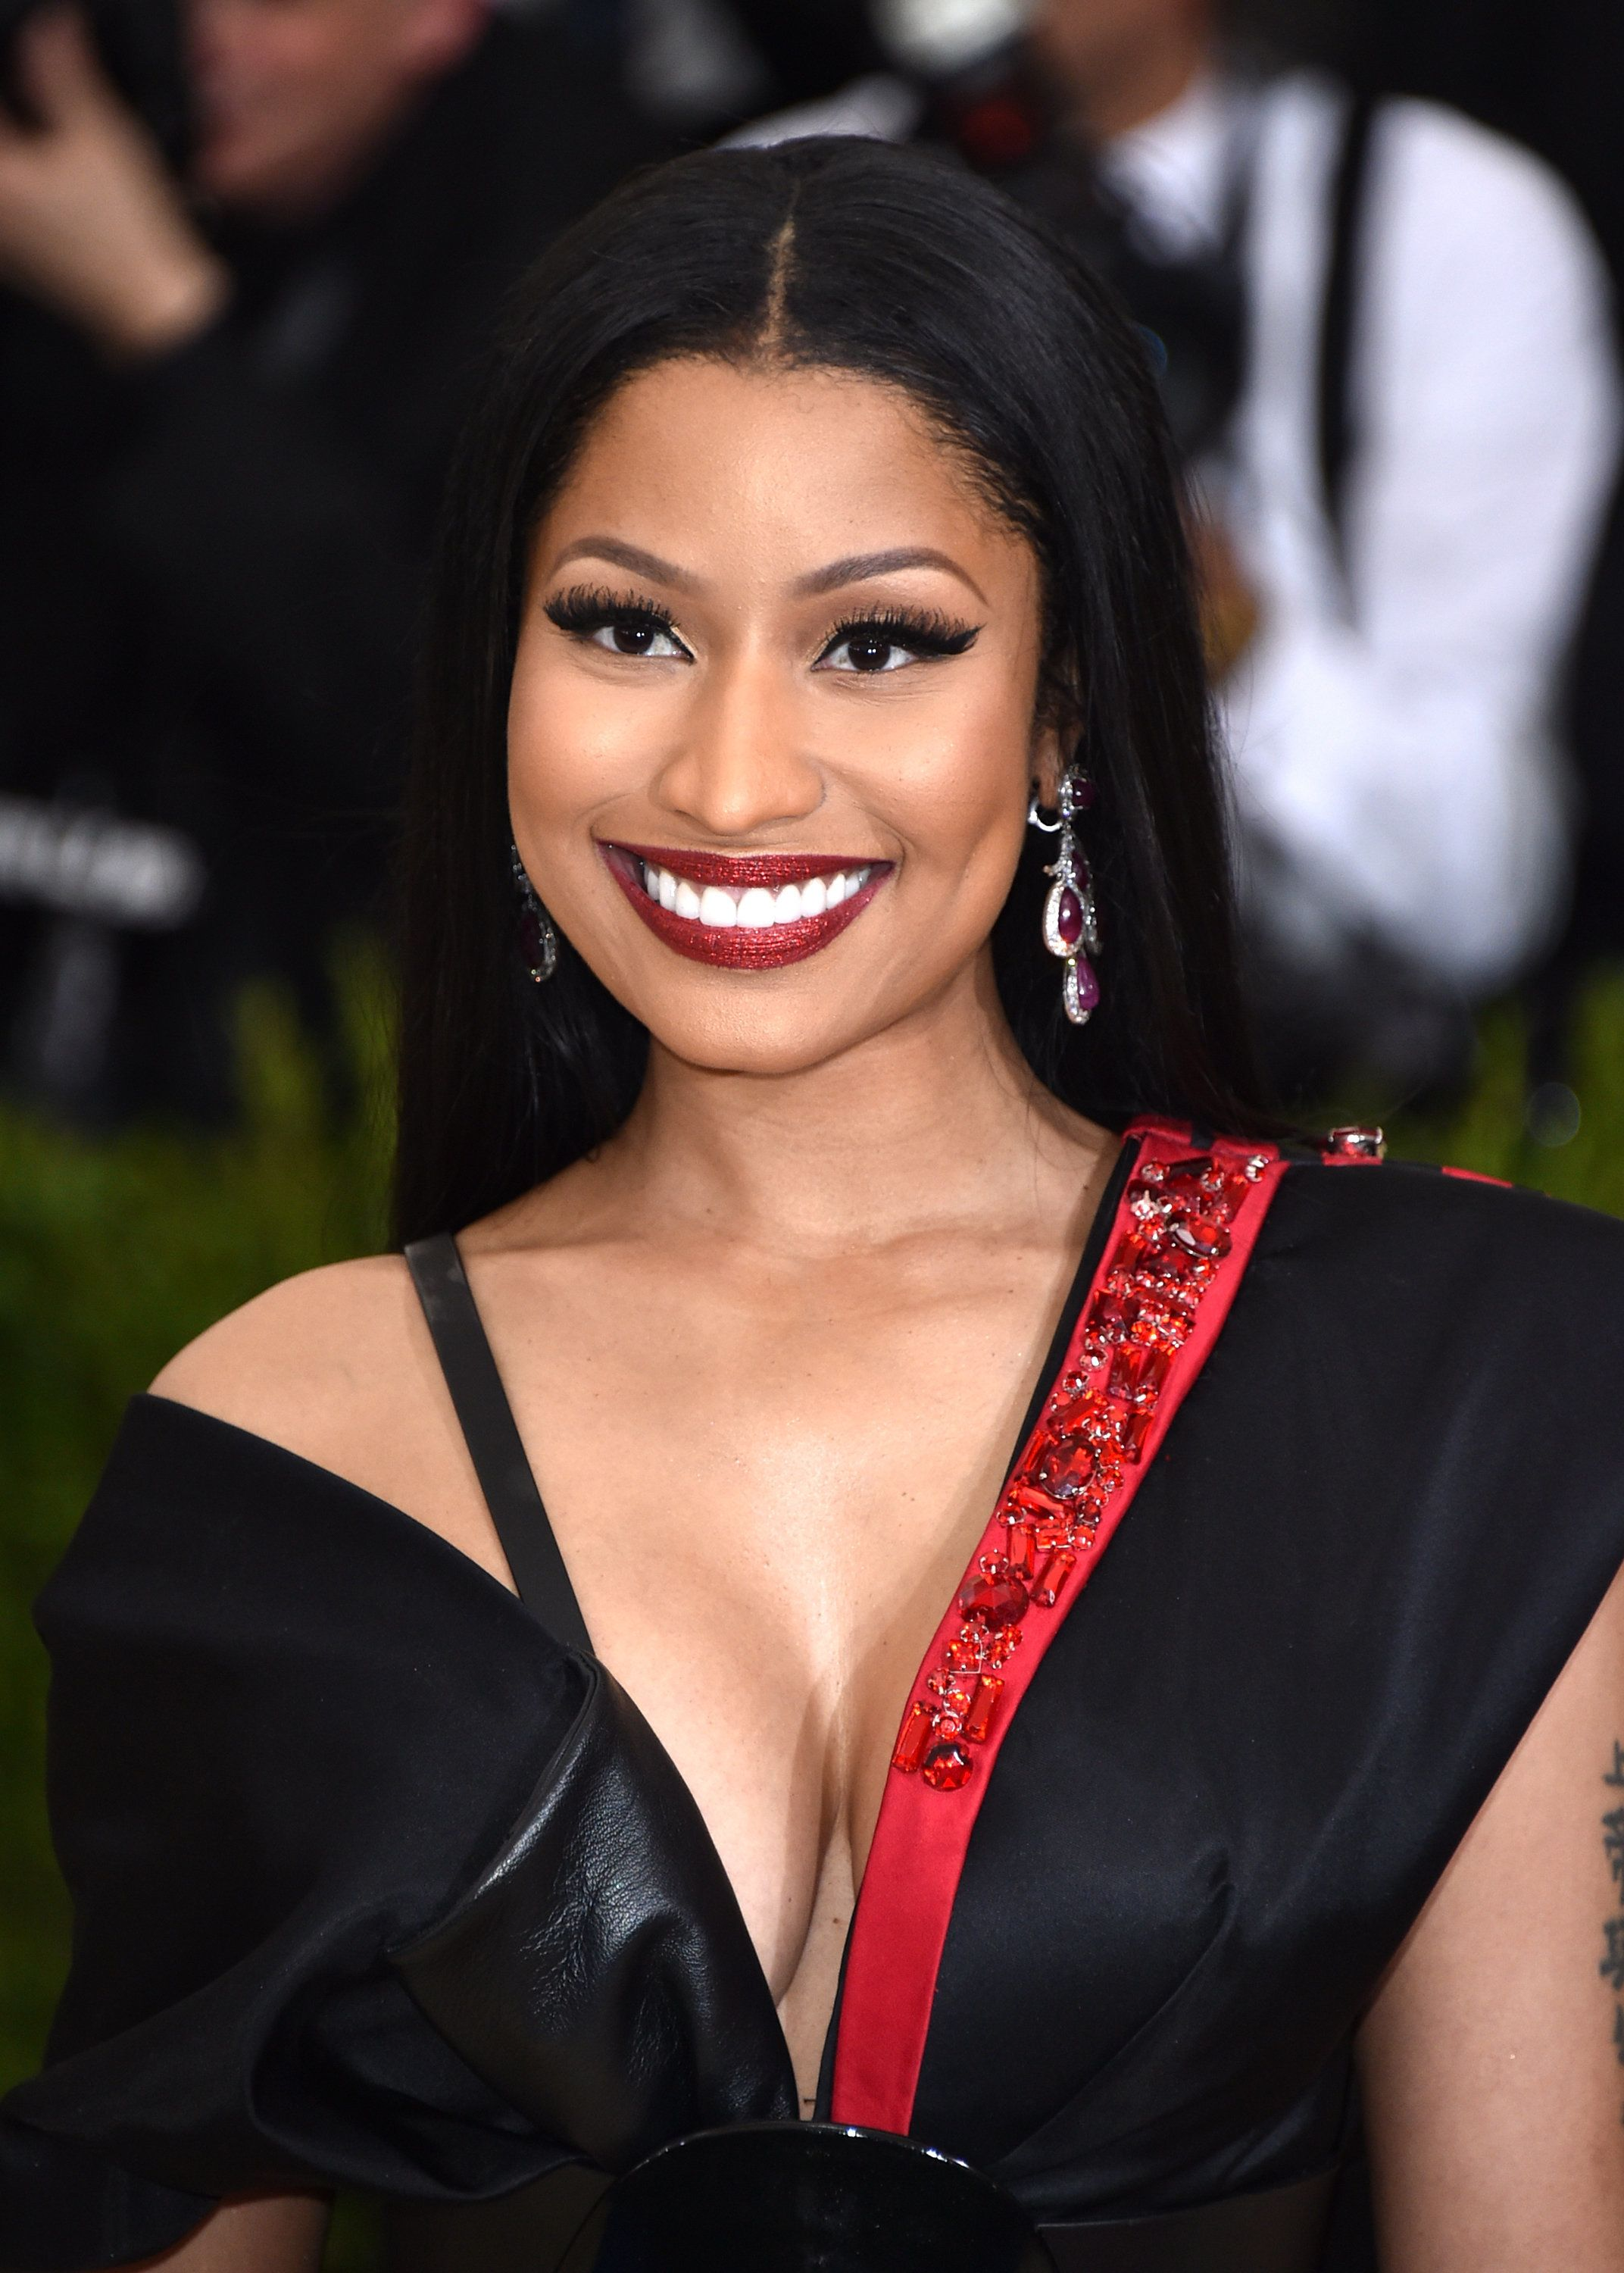 Nicki Minaj has announced plans to set up her own student loans